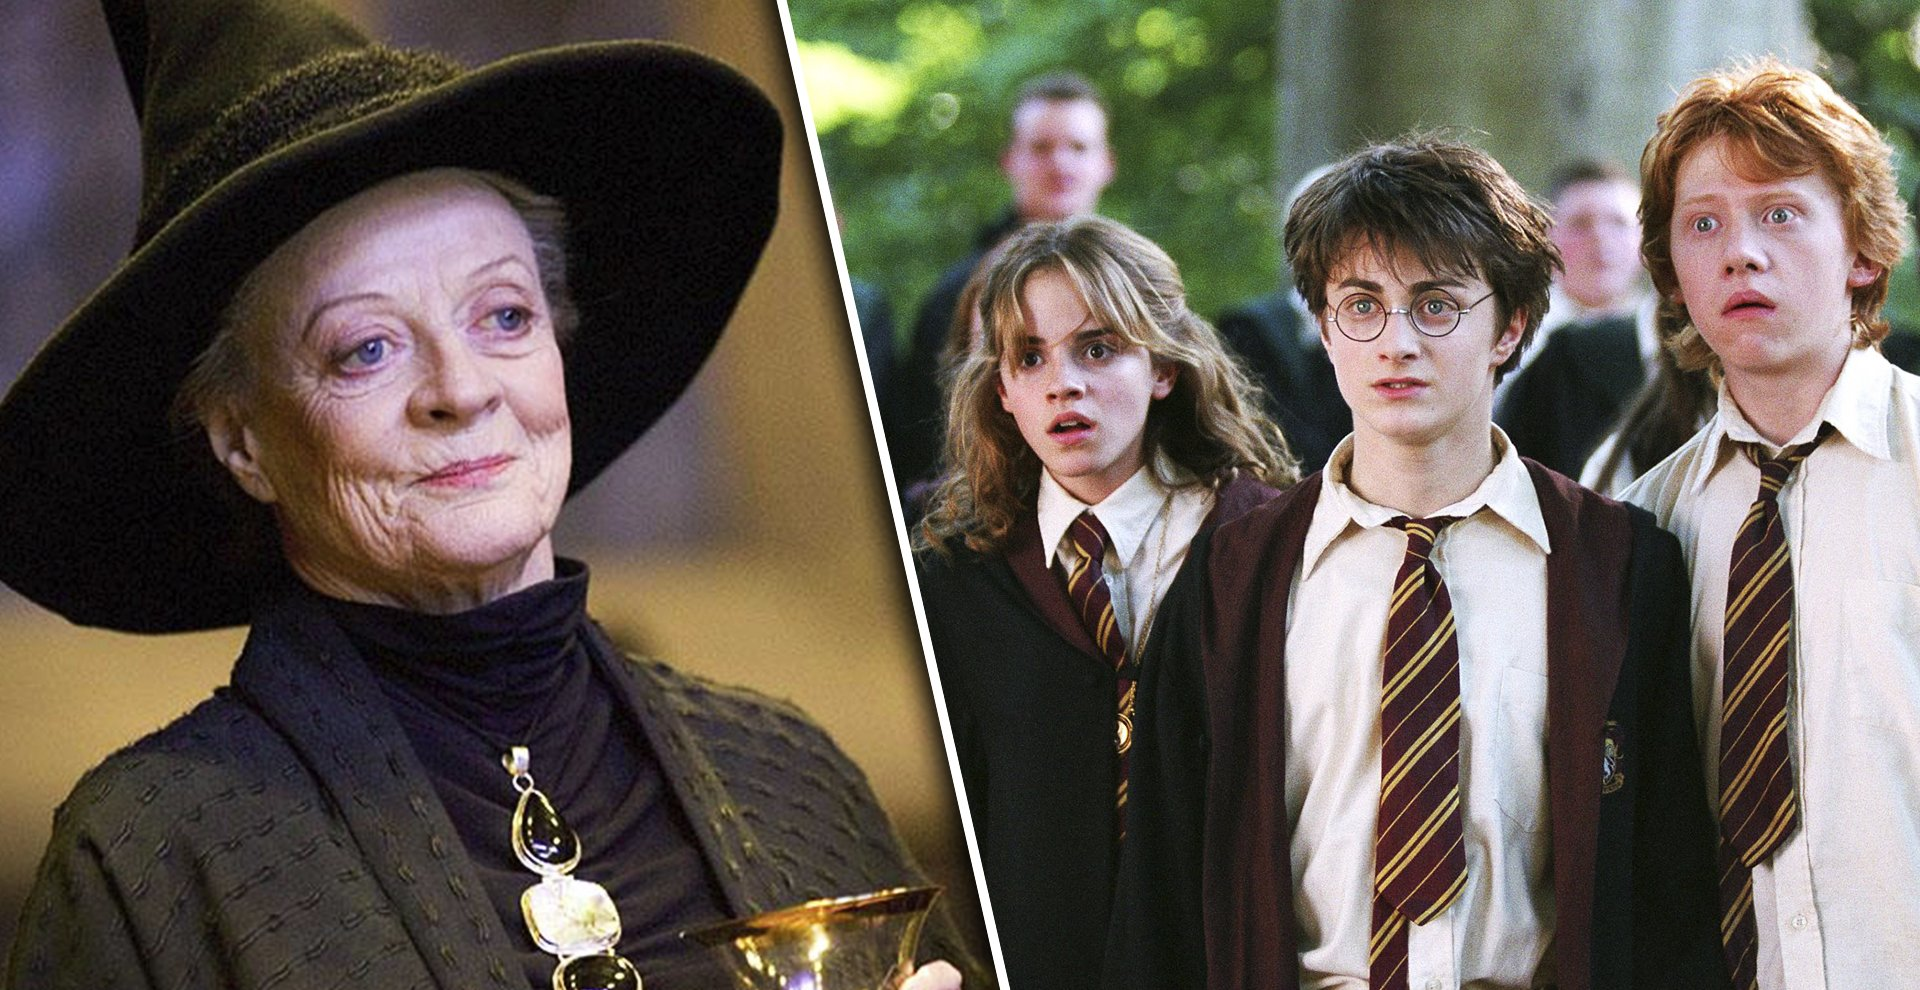 11 Strict Rules The Harry Potter Cast Had to Follow